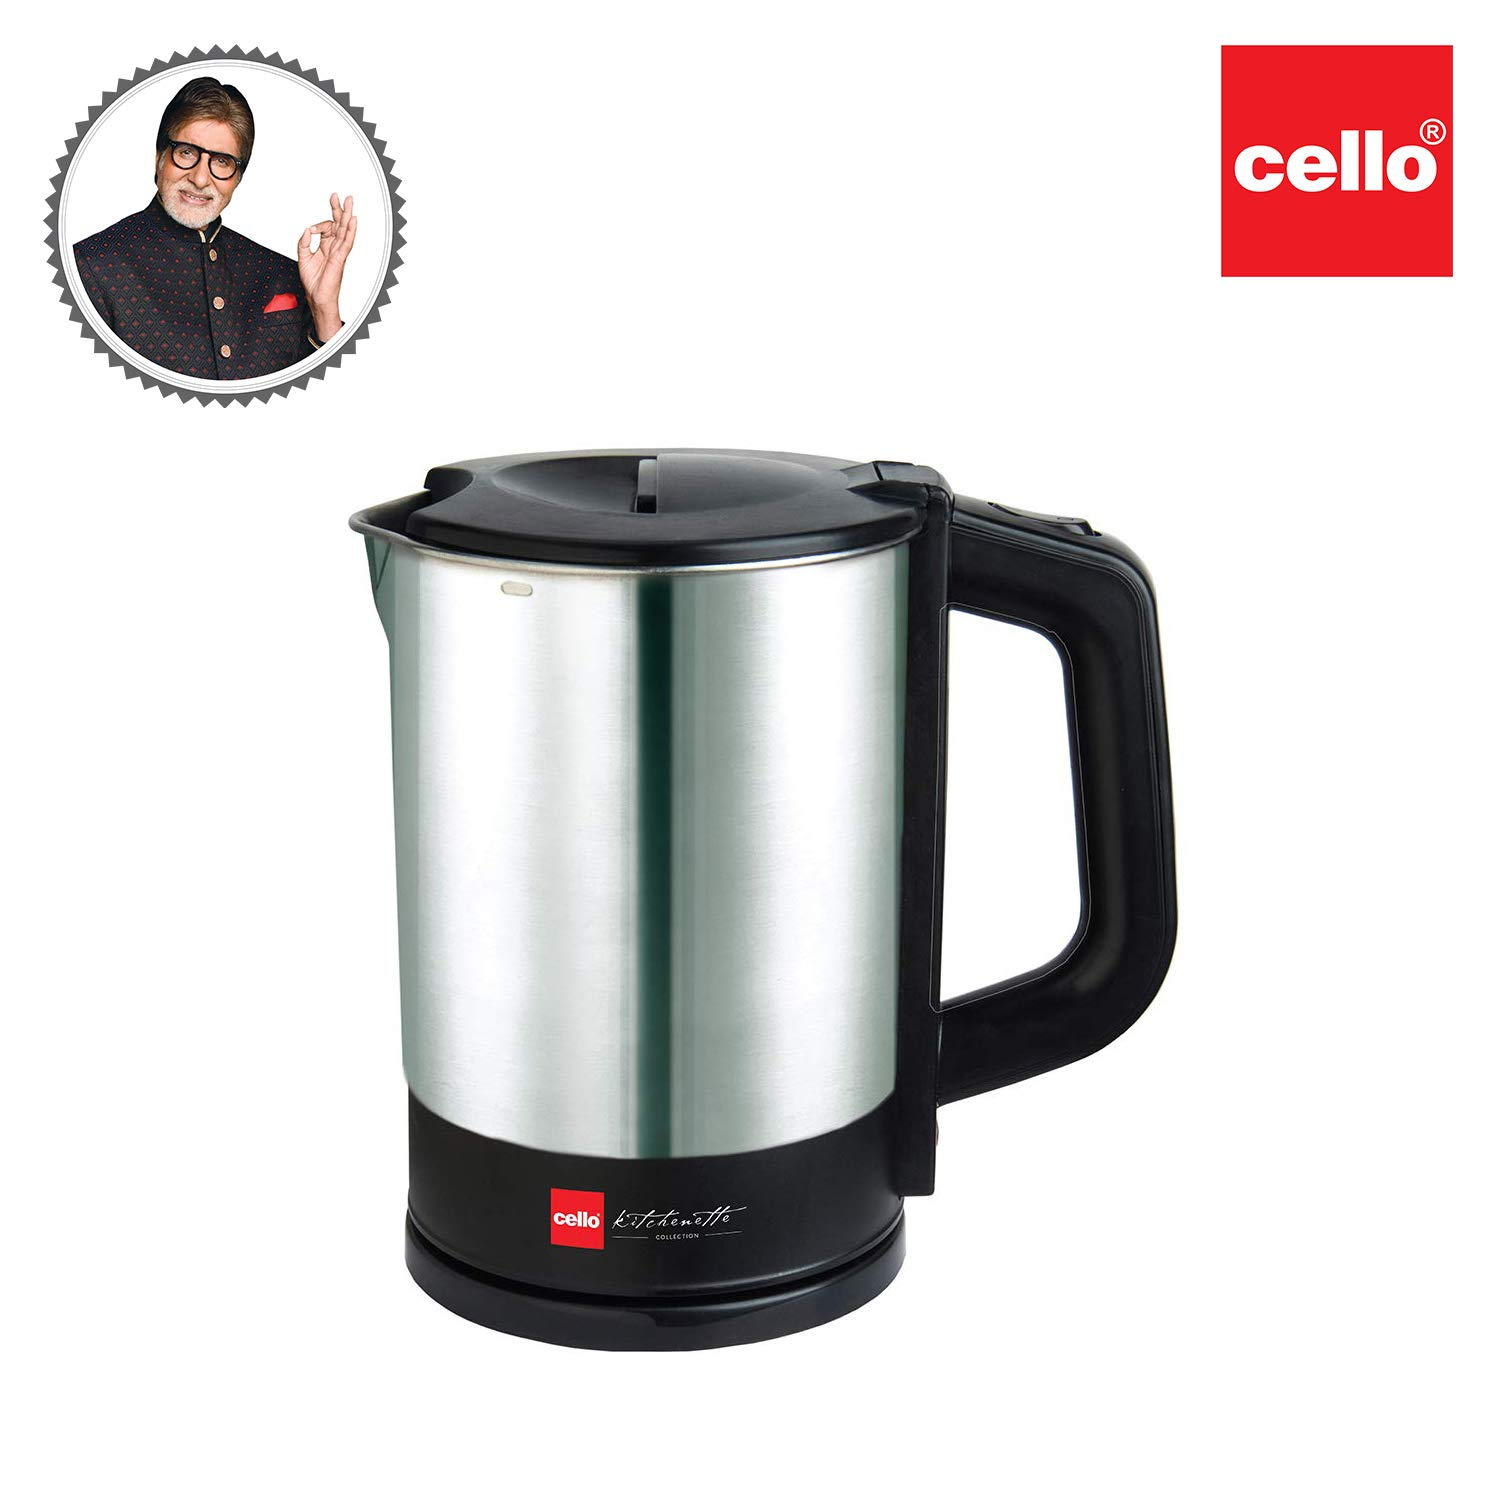 Cello Stainless Steel Quick Boil 900 Electric Kettle